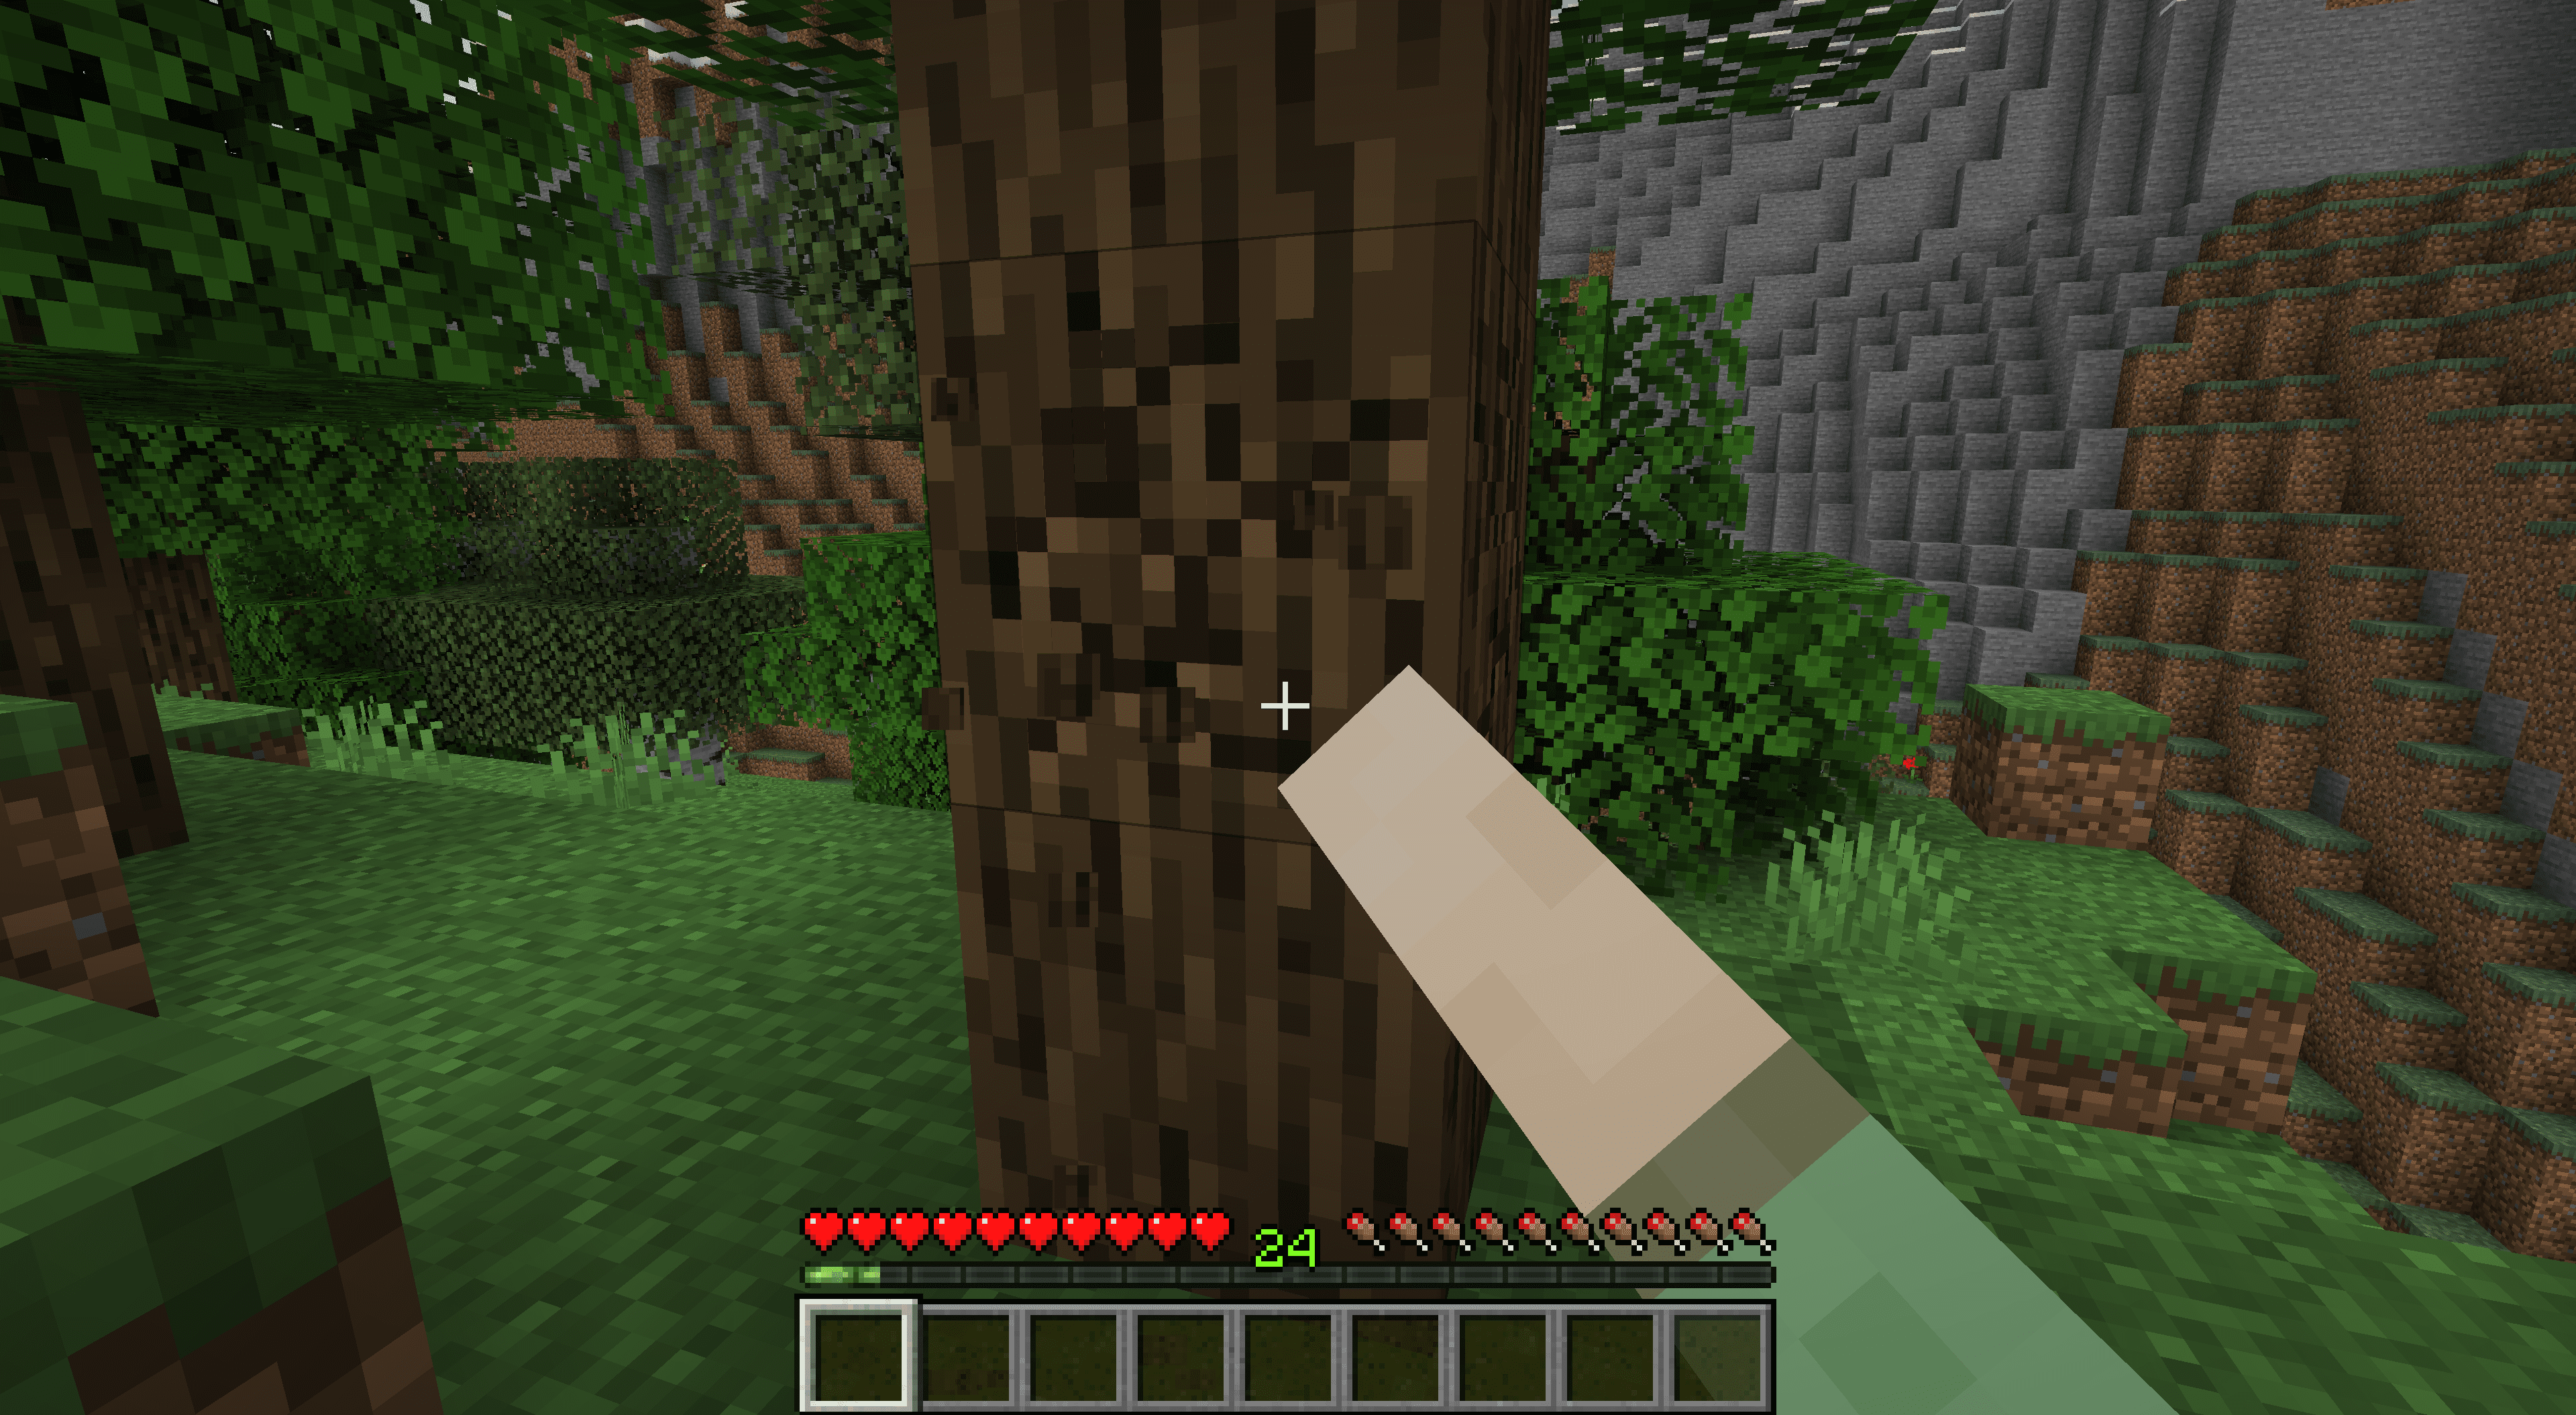 Punching a tree in Minecraft.